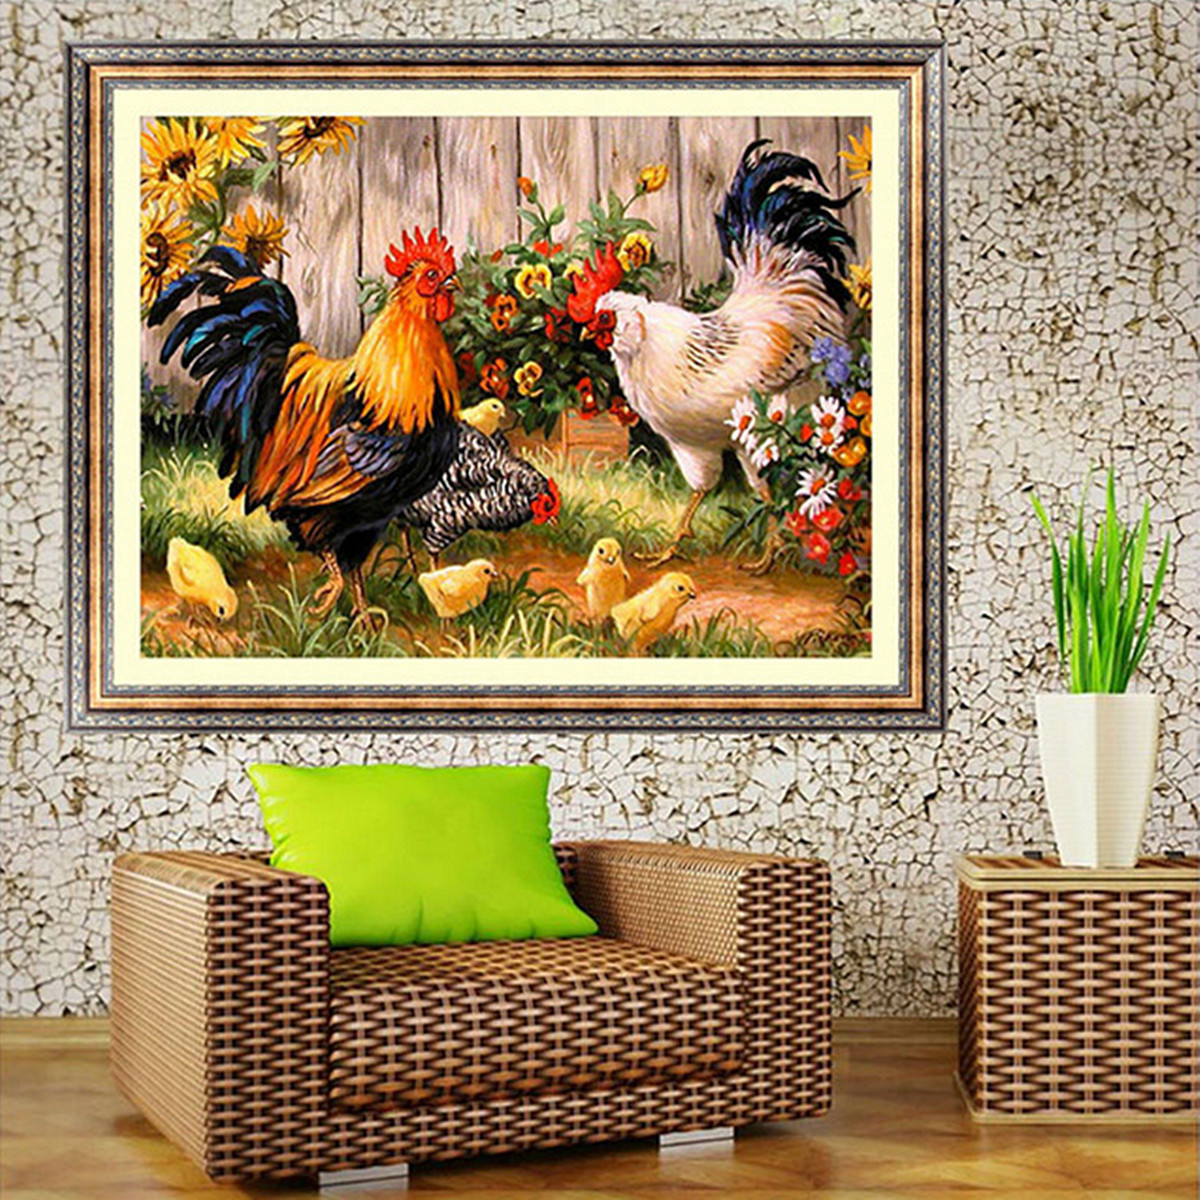 14x18 Inches 5D Diamond Painting Paper Garden Chicken Coop Cross Stitch Home Decor